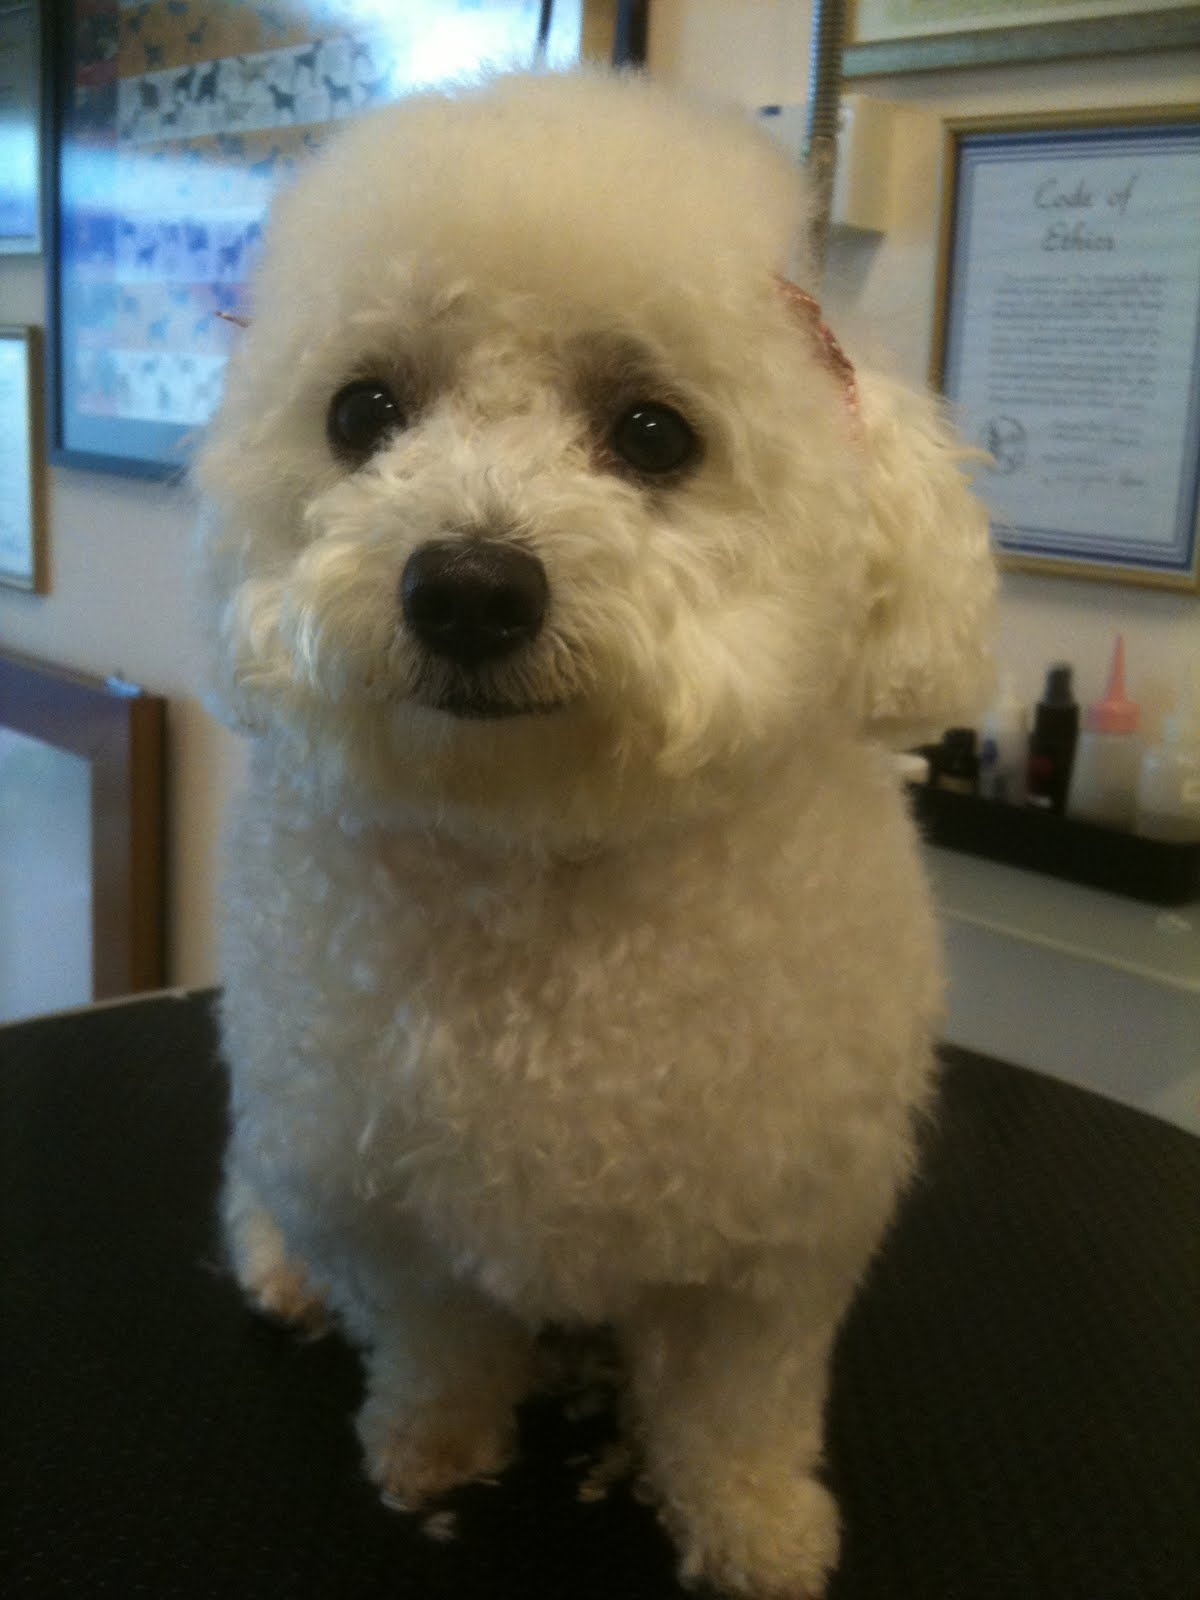 how to learn dog grooming from home